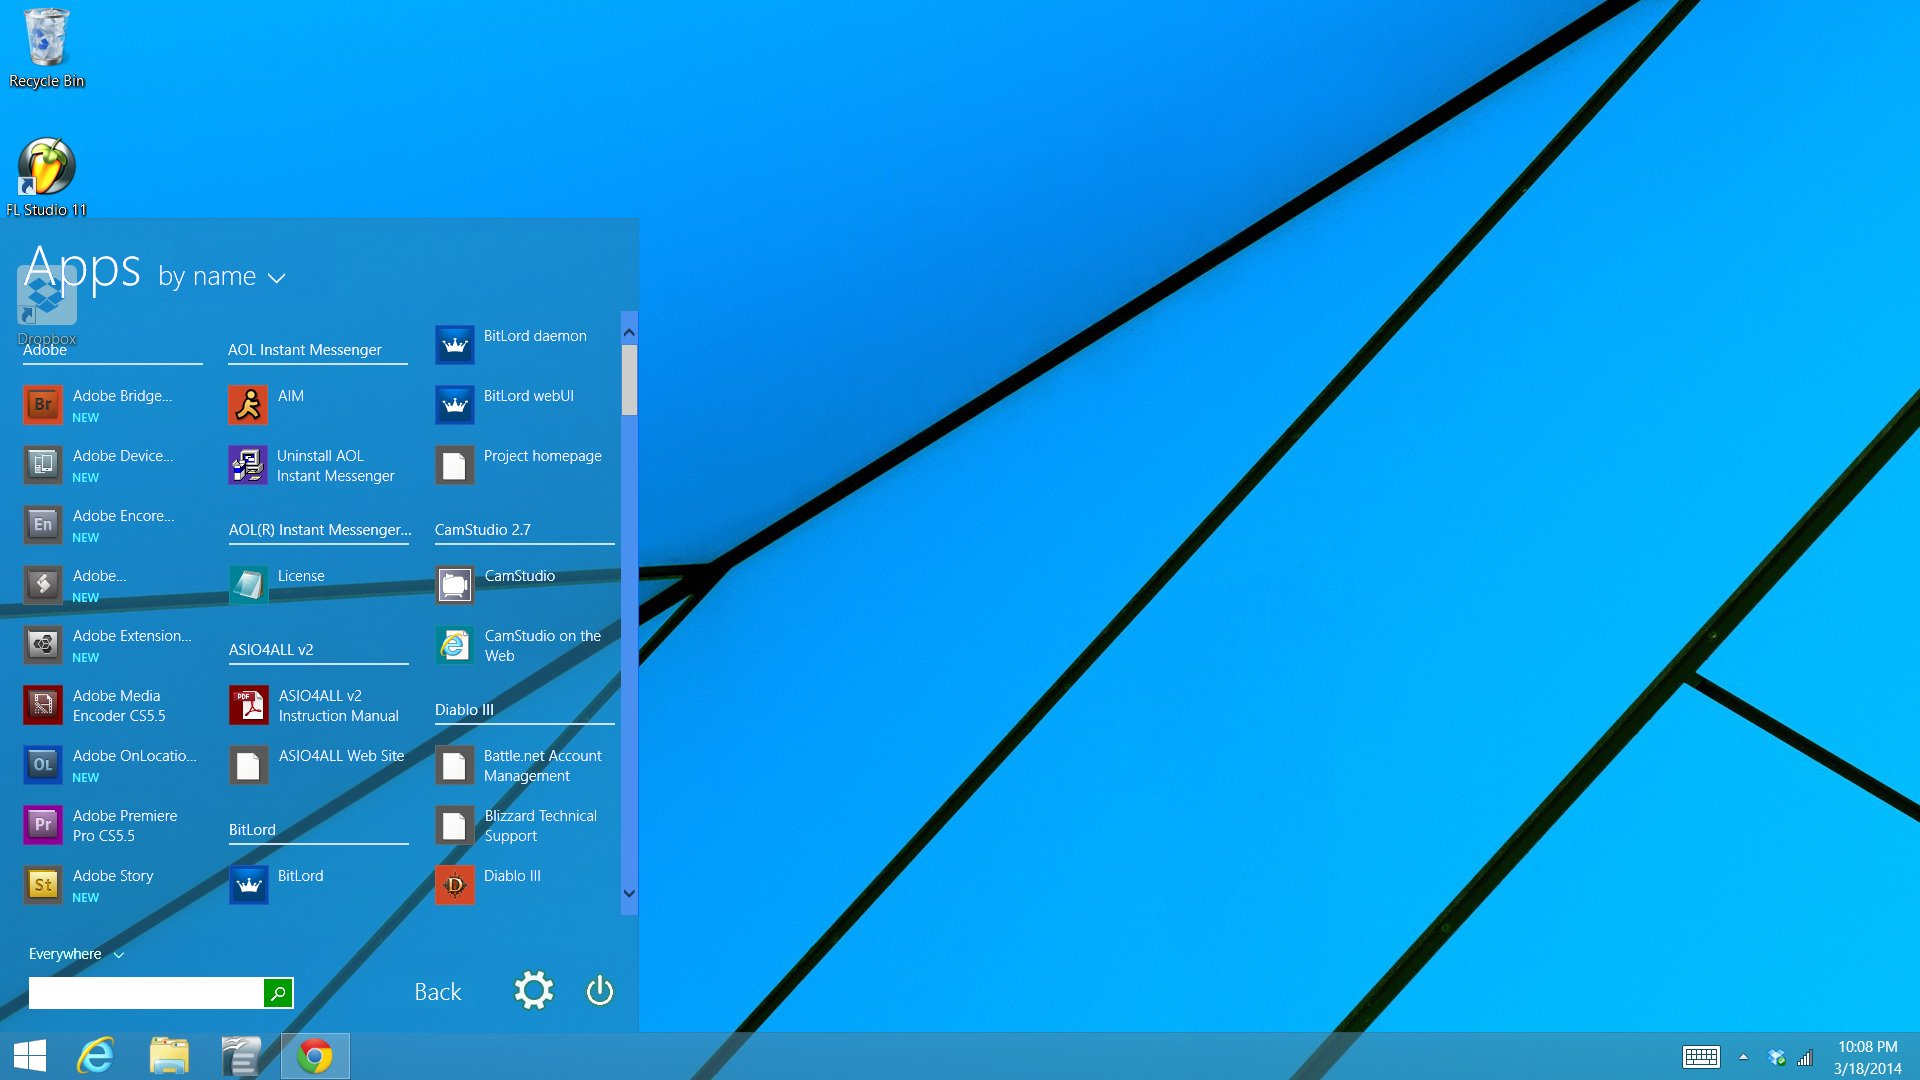 Start Menu Brought Back To Life In New Windows 9 Concept